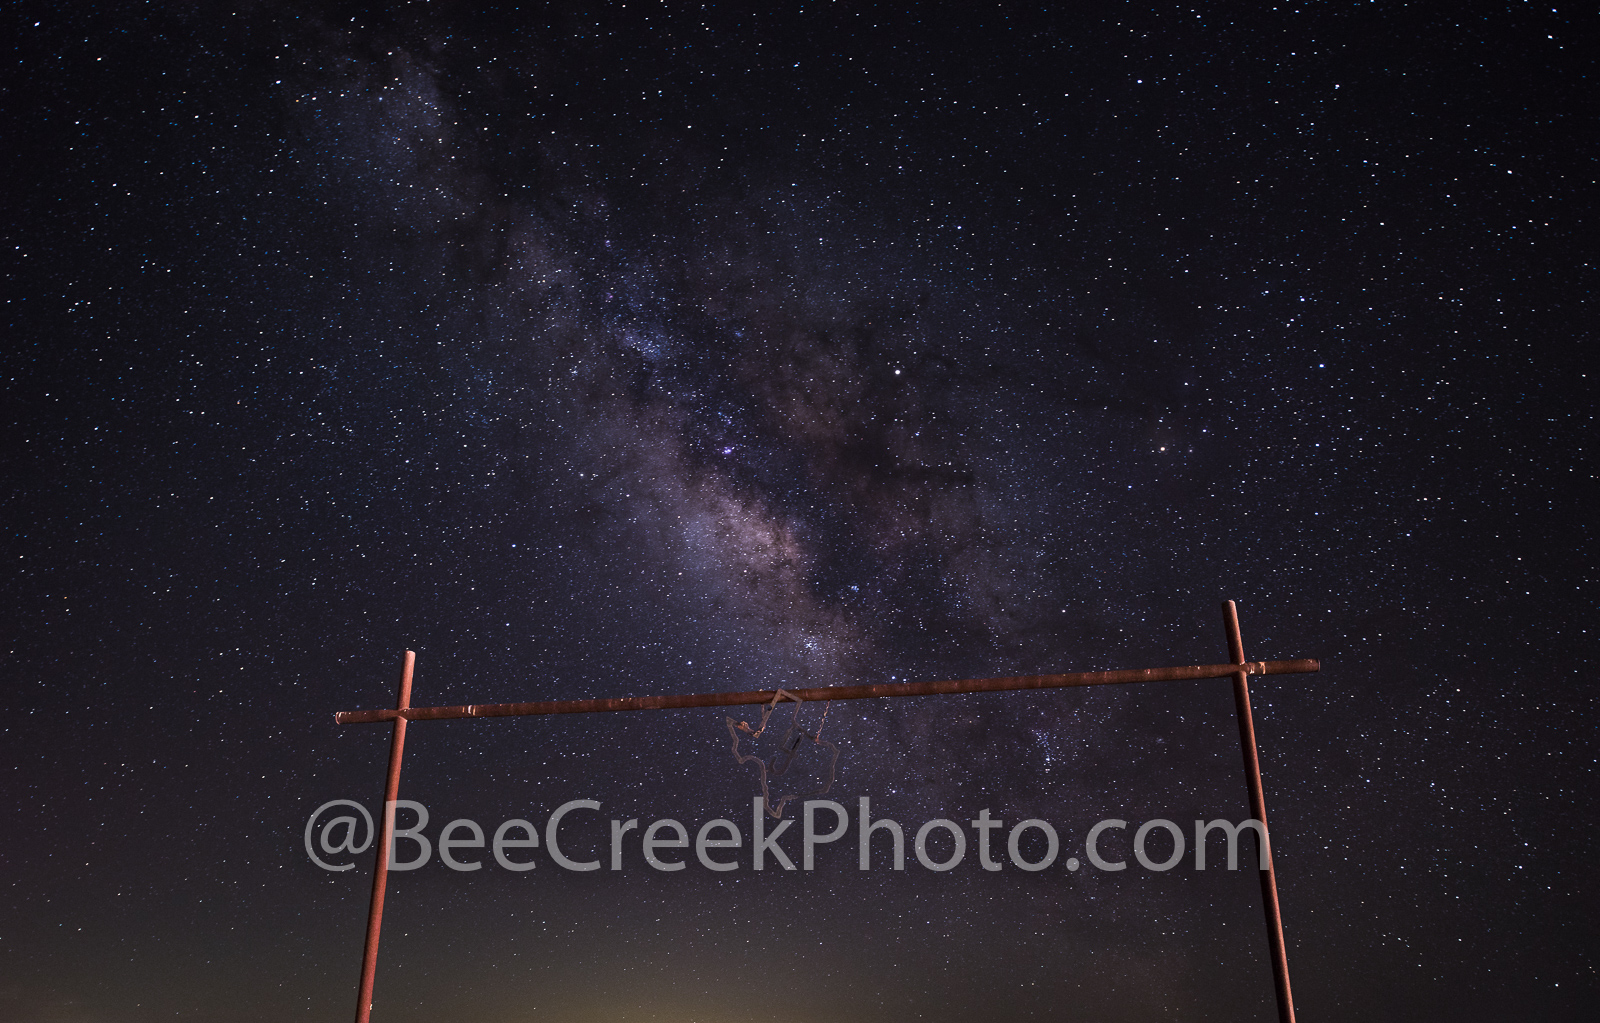 Astronomy, astrophotography, celestial, gate, ranch, dark, dark skies, galaxies, galaxy, golden,, landscape, light pollution, milky way, milkyway, night, night landscape, night landscapes, night photo